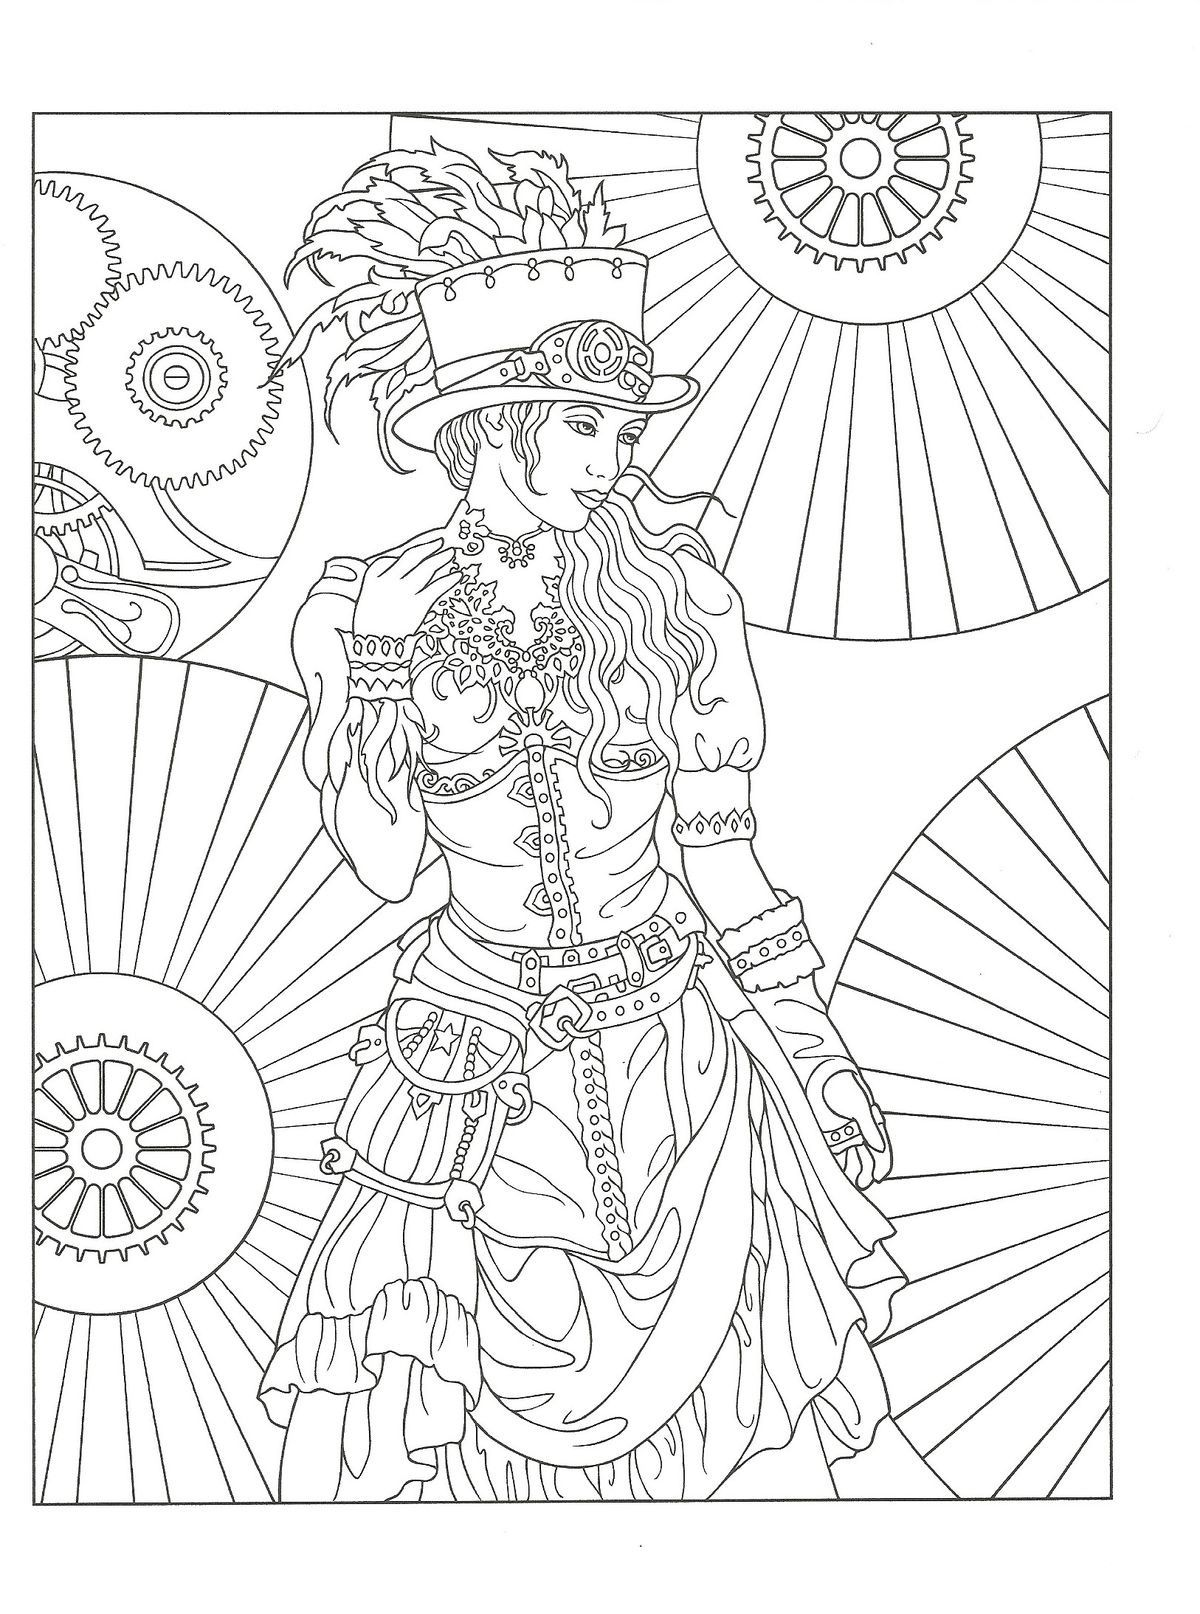 Creative Haven Steampunk Fashions Coloring Book By Marty Noble Dover Publications